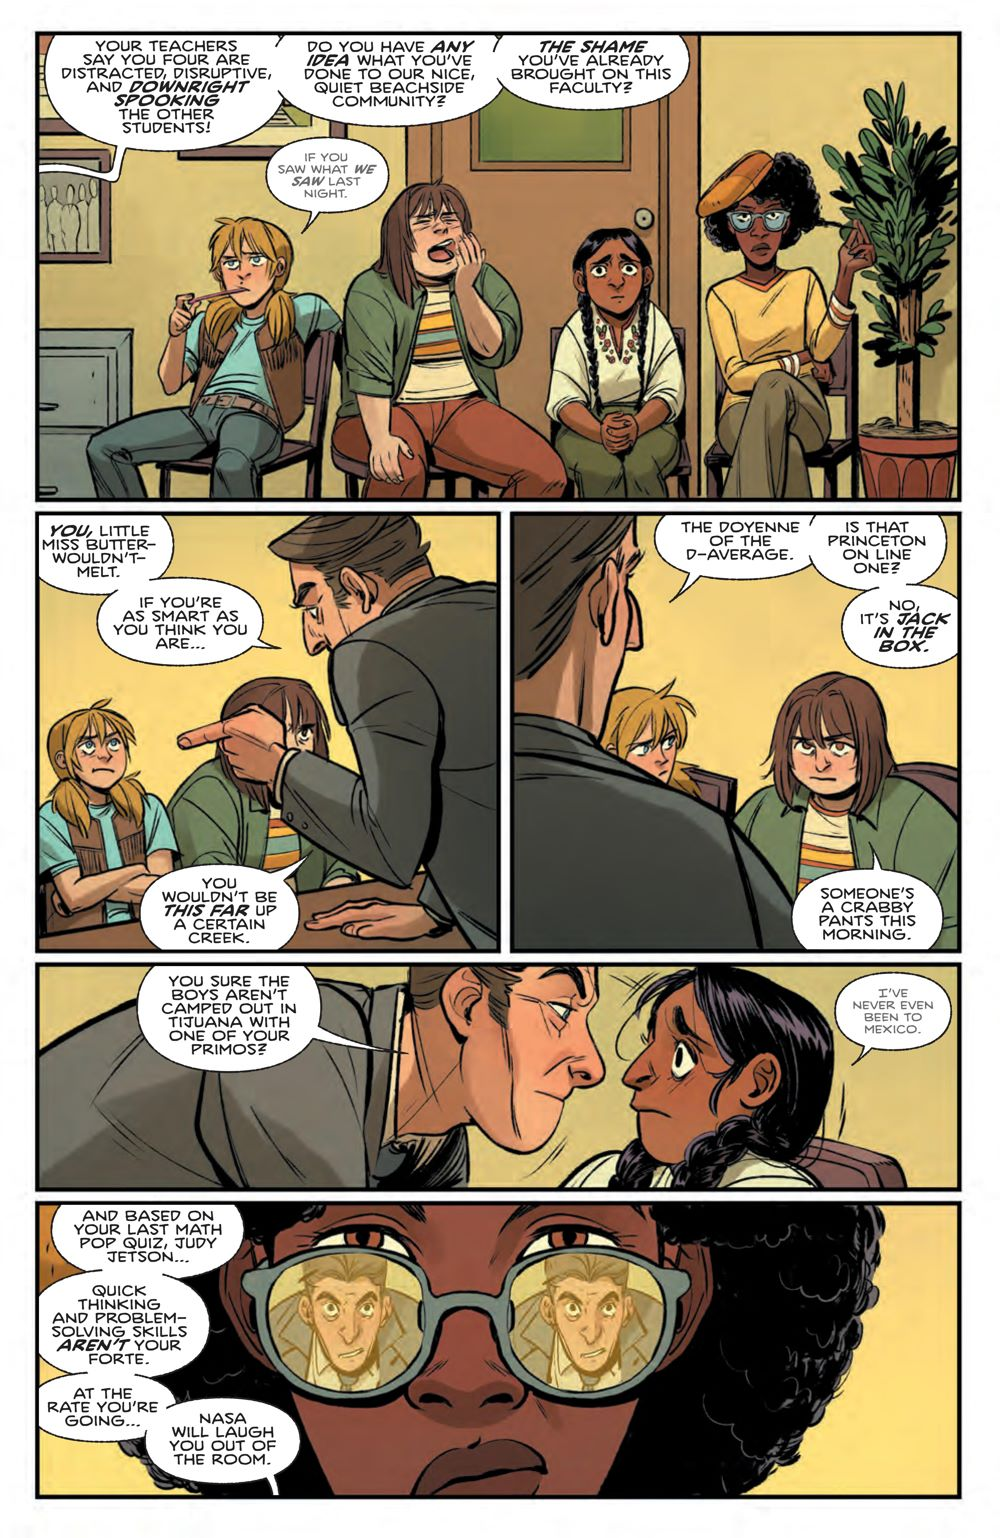 ProctorValleyRoad_003_PRESS_3 ComicList Previews: PROCTOR VALLEY ROAD #3 (OF 5)